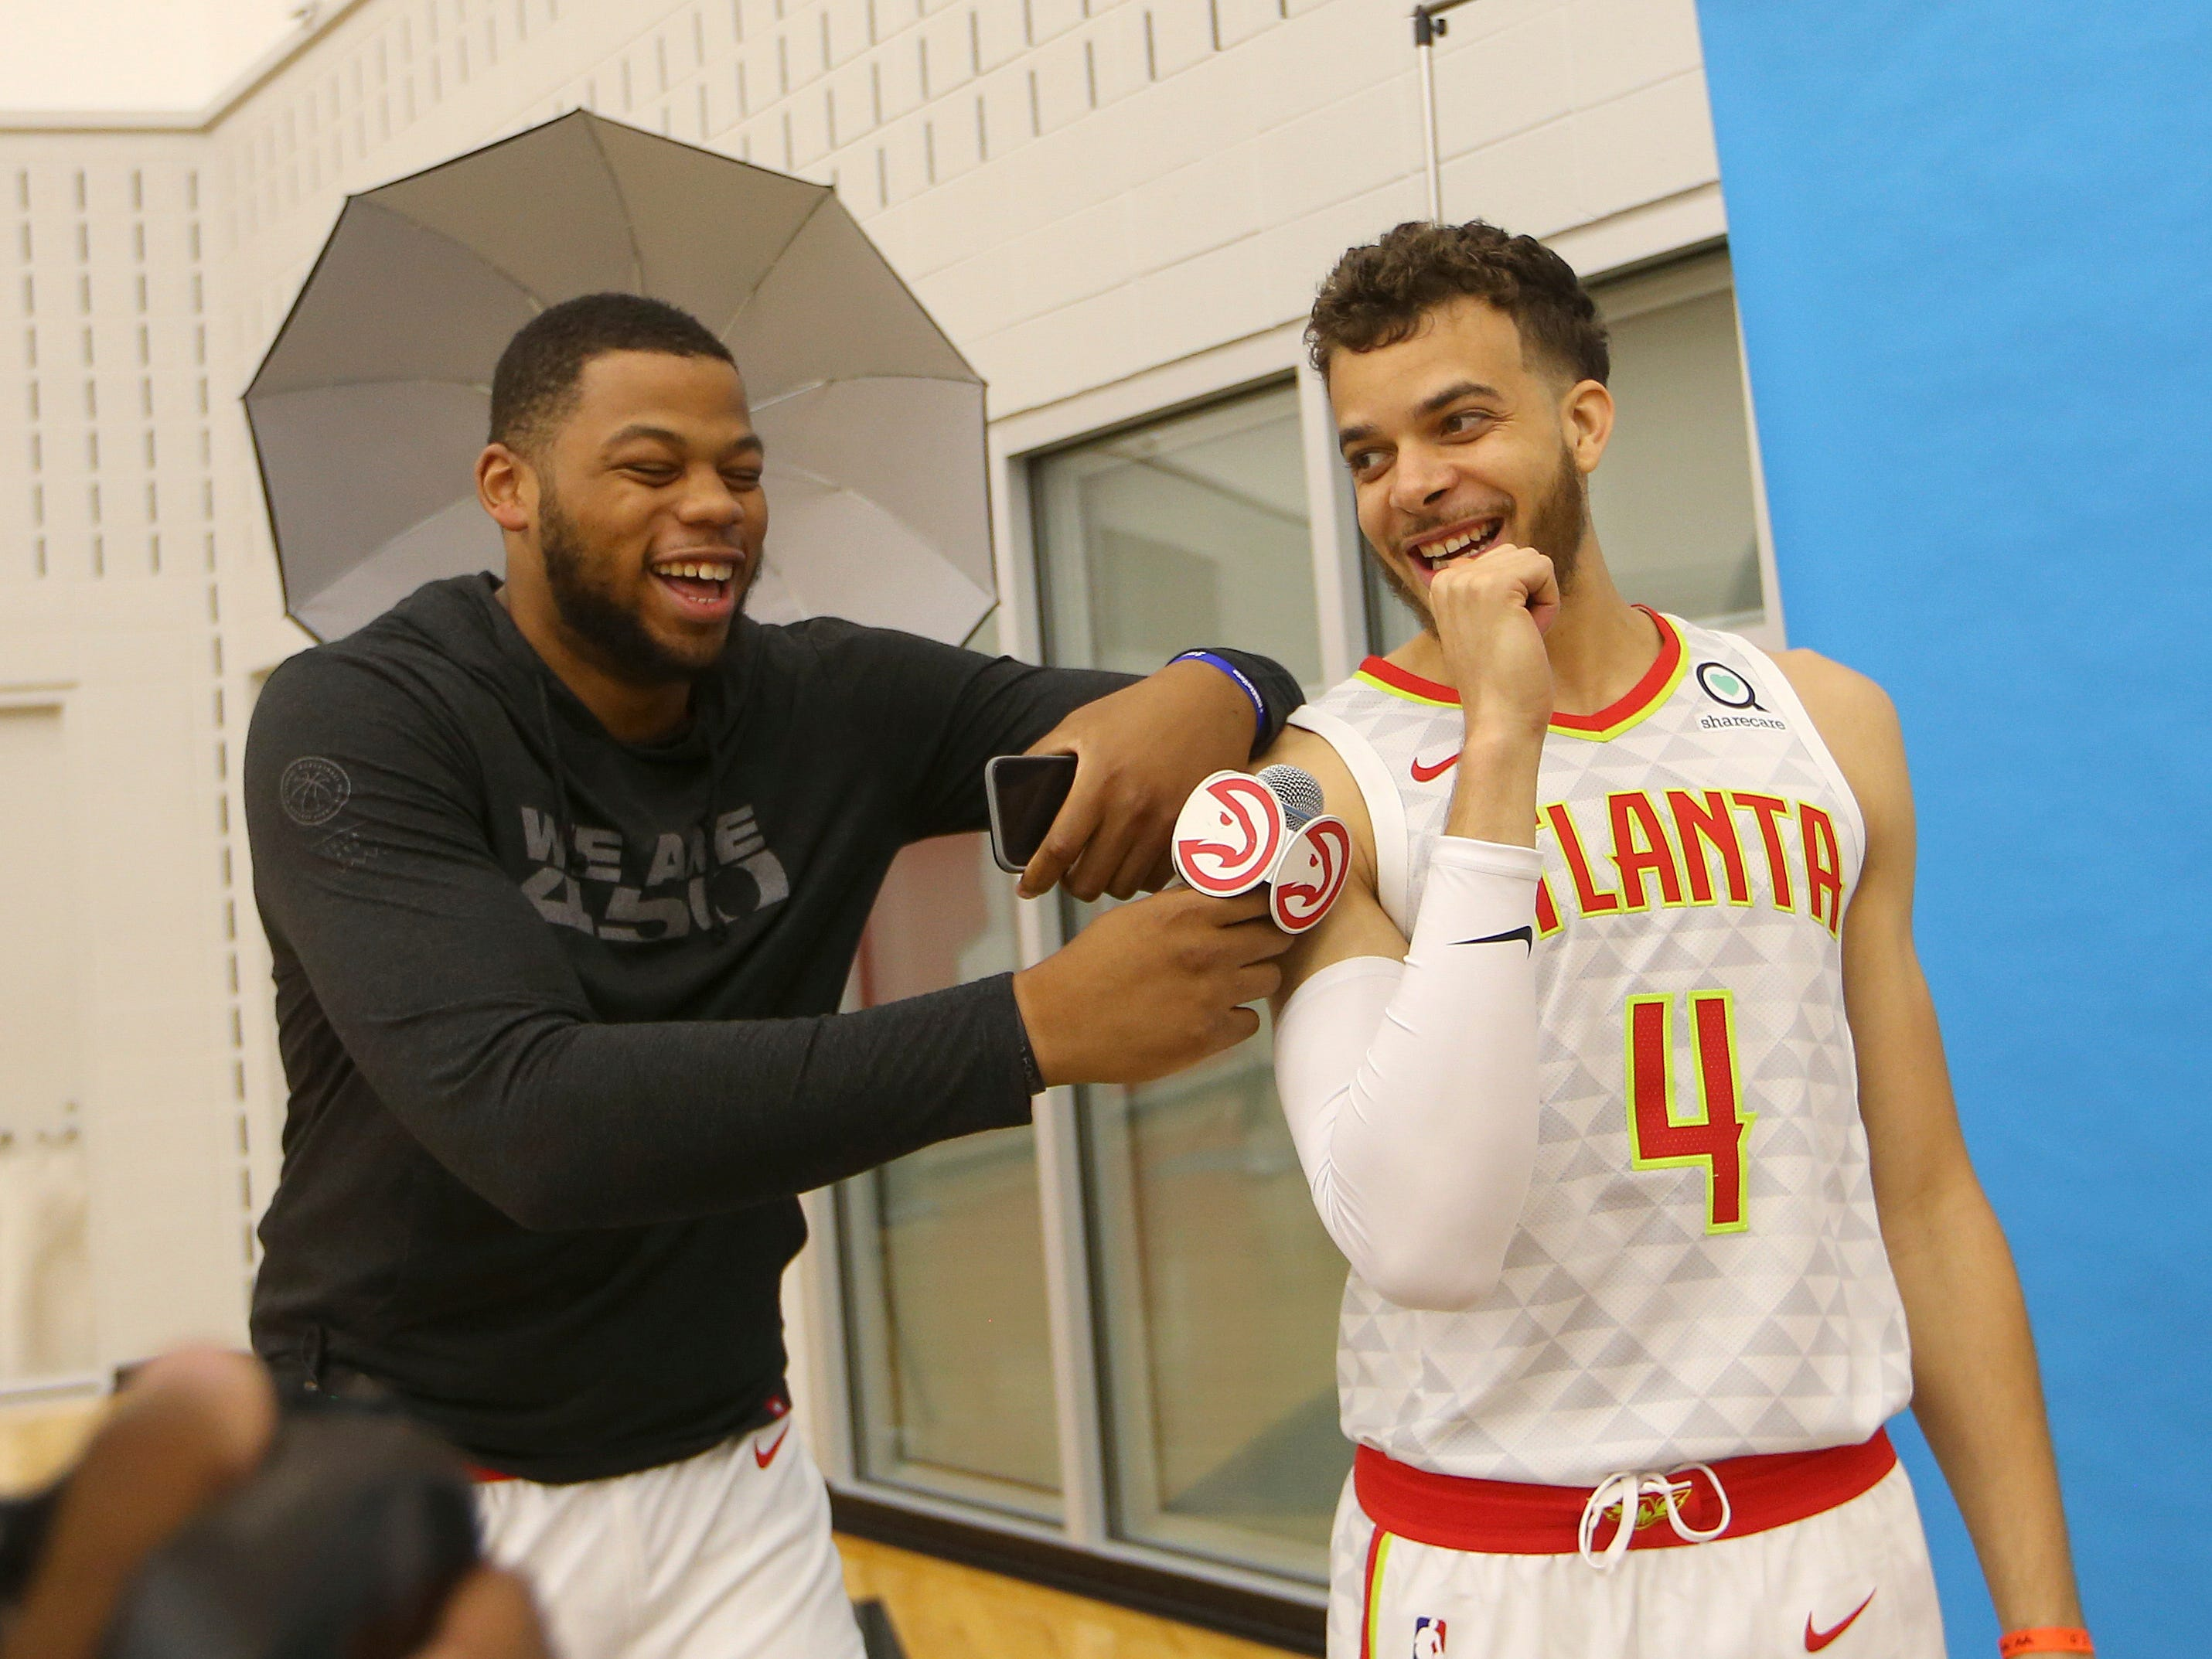 The Atlanta Hawks' Omari Spellman, left, interviews teammate R.J. Hunter (4) during media day.